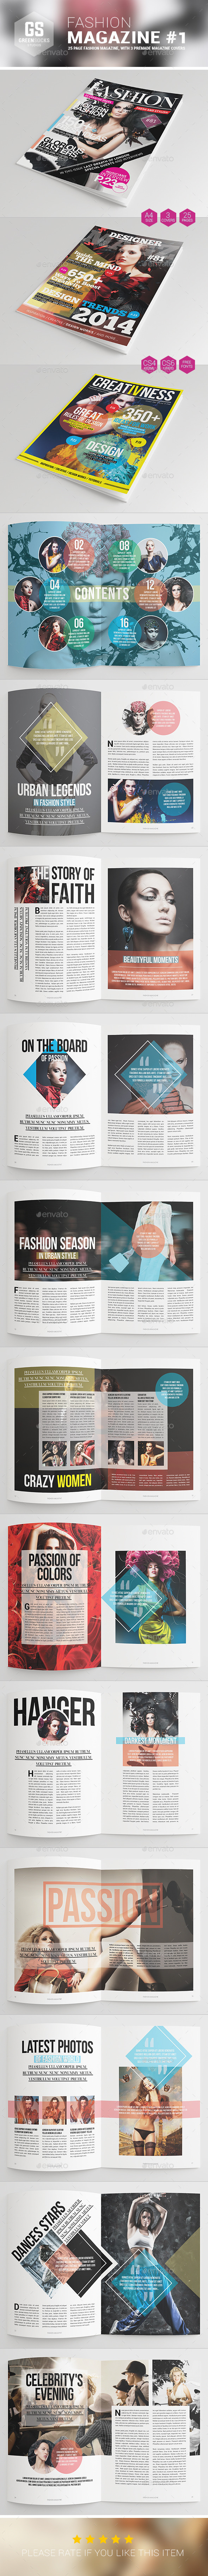 GraphicRiver Fashion Magazine #1 9160403